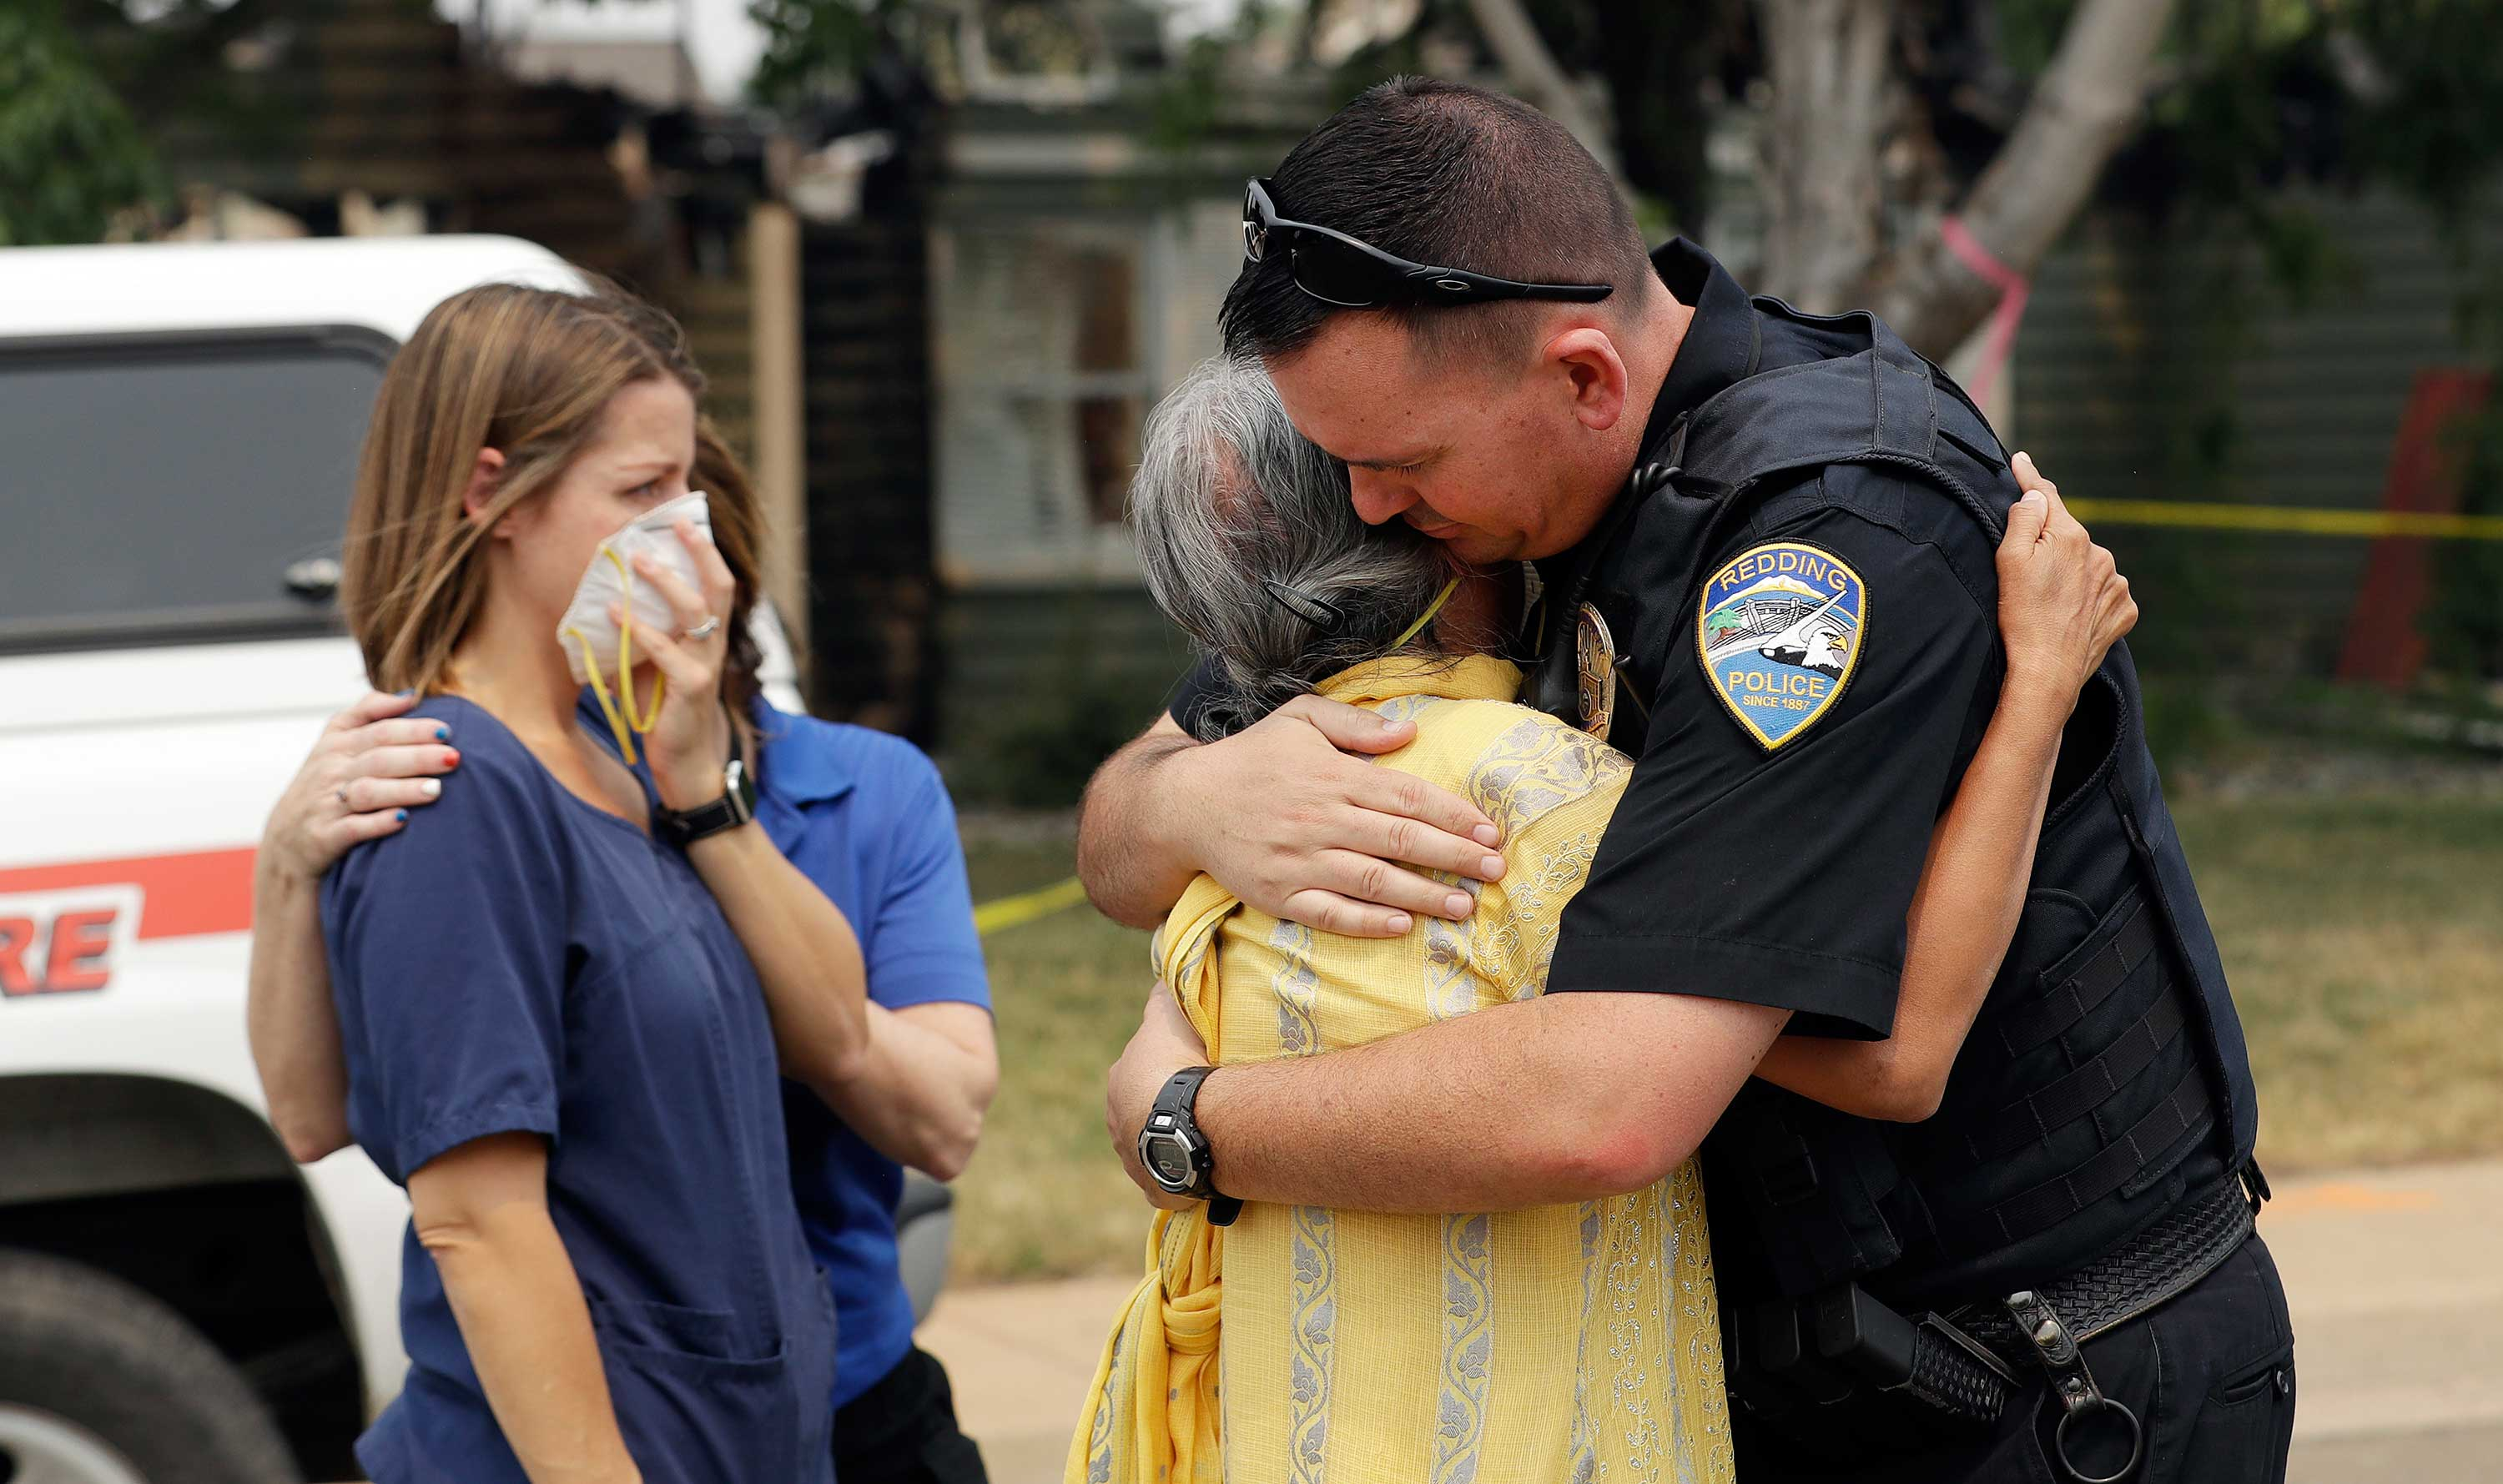 "<div class=""meta image-caption""><div class=""origin-logo origin-image none""><span>none</span></div><span class=""caption-text"">Redding Police Dept. officer Brian Berg, right, comforts a resident, center, wishing not to be identified, after she saw her fire-ravaged home for the first time Thursday, Aug. 2. (Marcio Jose Sanchez/AP Photo)</span></div>"